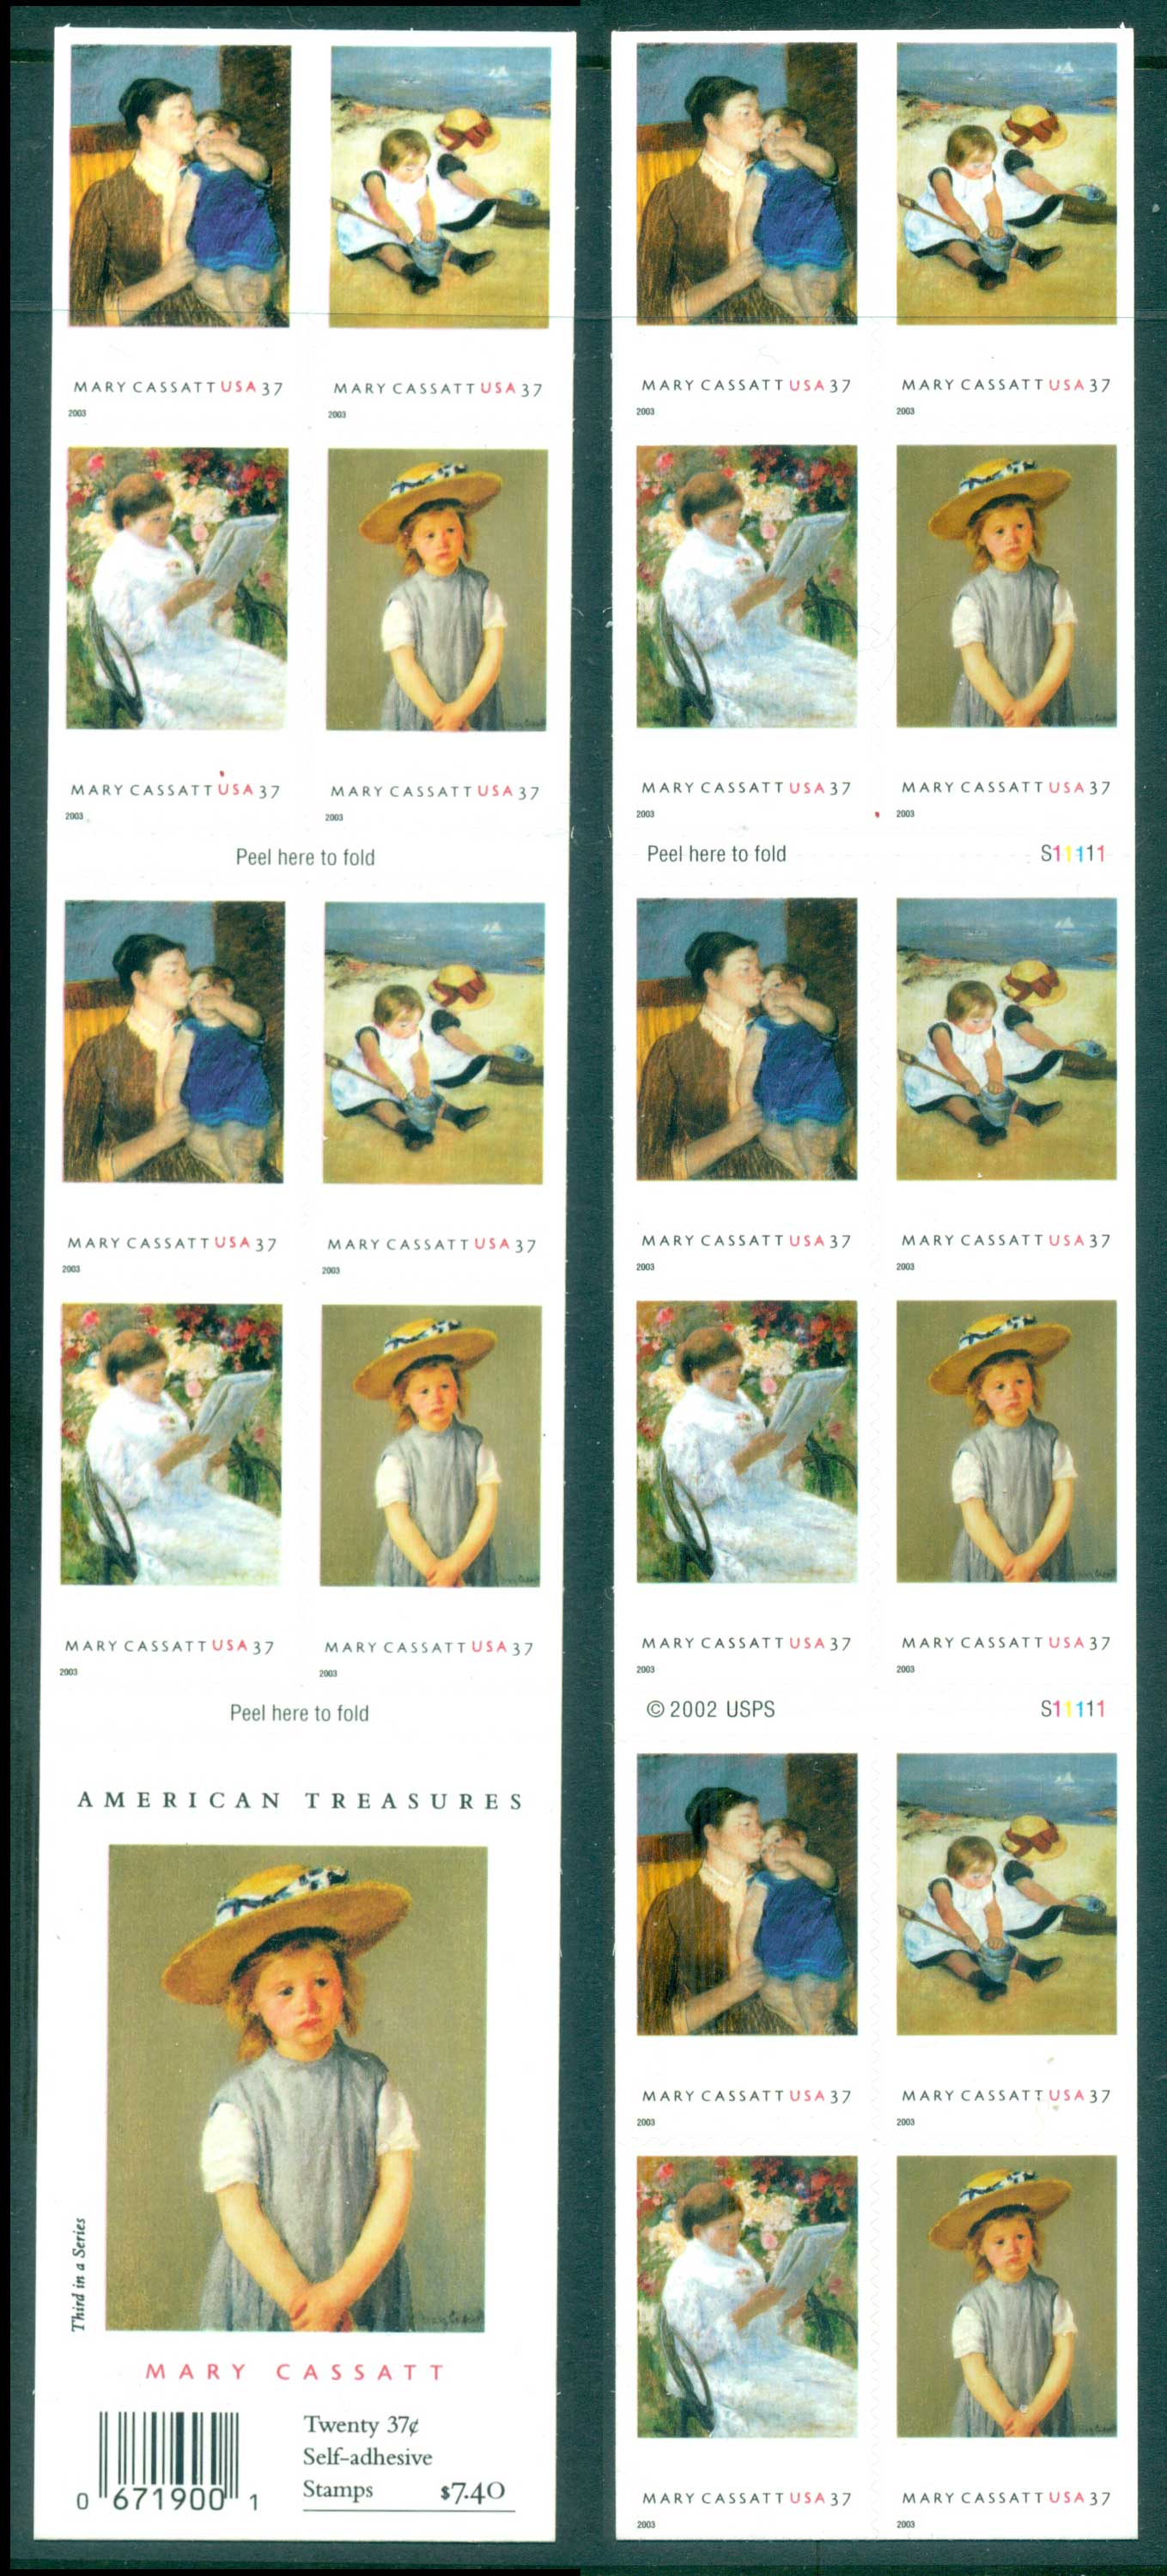 USA 2003 Sc#3807a Mary Cassatt Paintings Blkt 20 MUH lot33740